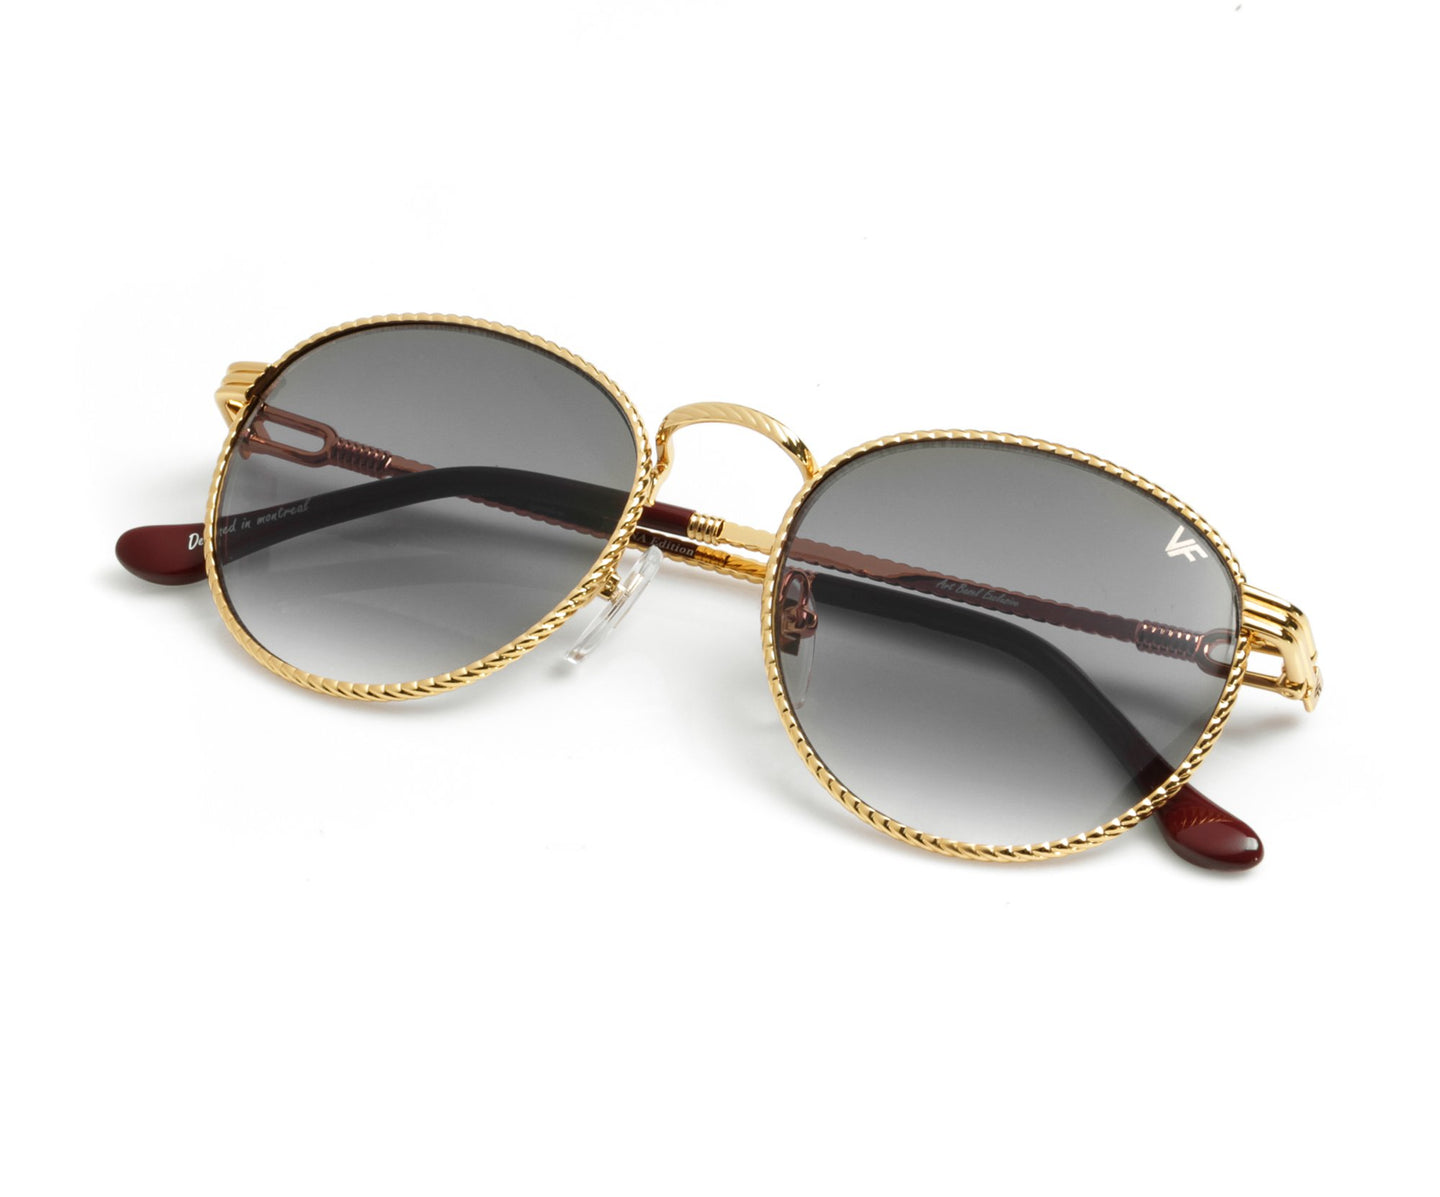 VF Miami Vice Full Rope 18KT Gold (Dark Gray), VF by Vintage Frames , glasses frames, eyeglasses online, eyeglass frames, mens glasses, womens glasses, buy glasses online, designer eyeglasses, vintage sunglasses, retro sunglasses, vintage glasses, sunglass, eyeglass, glasses, lens, vintage frames company, vf